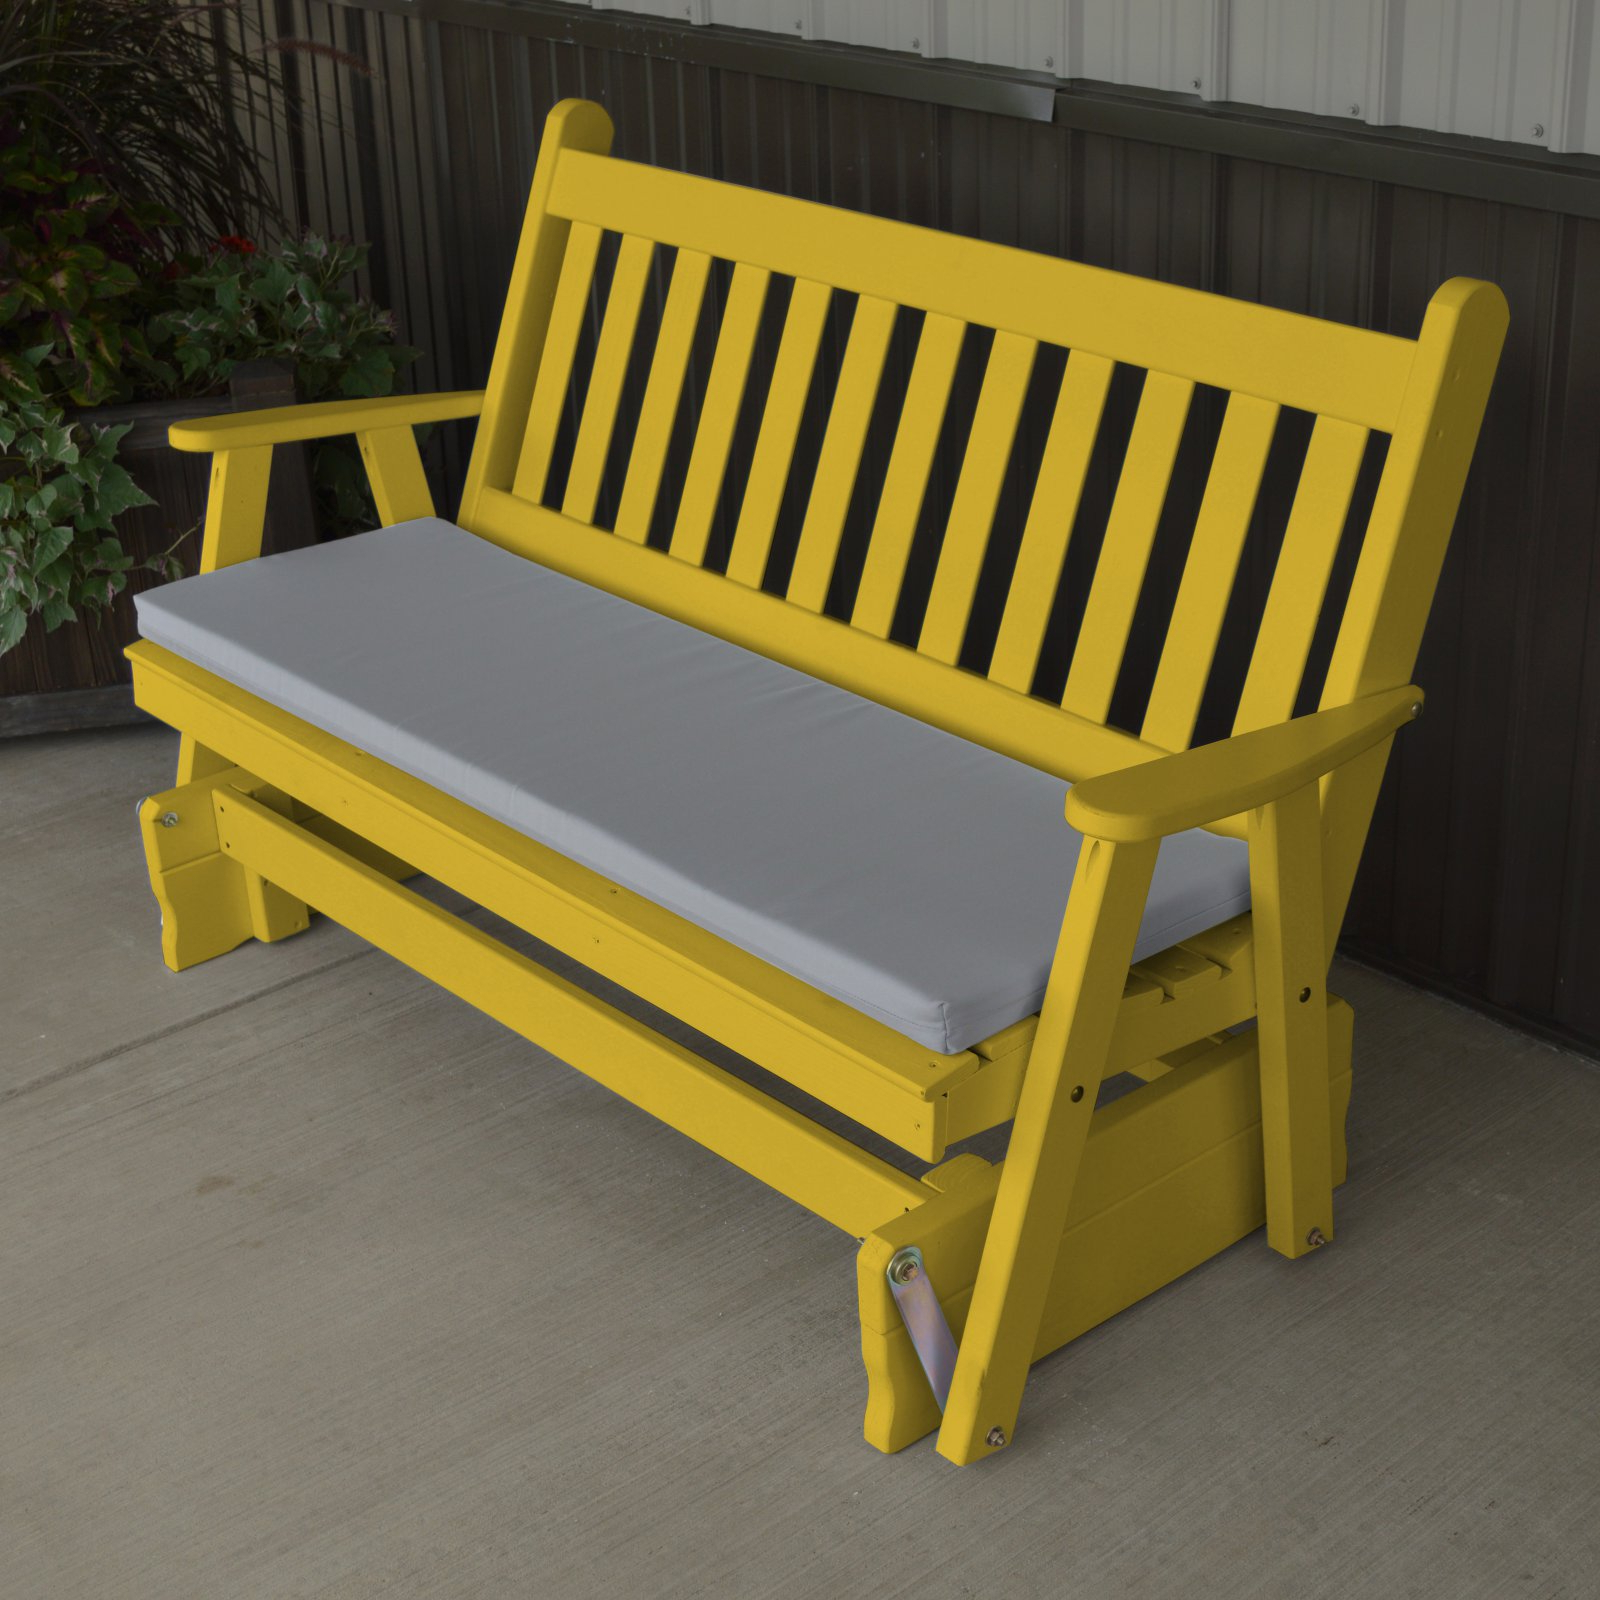 Famous Traditional English Glider Benches In A & L Furniture Yellow Pine Traditional English Outdoor Bench Glider (View 12 of 34)